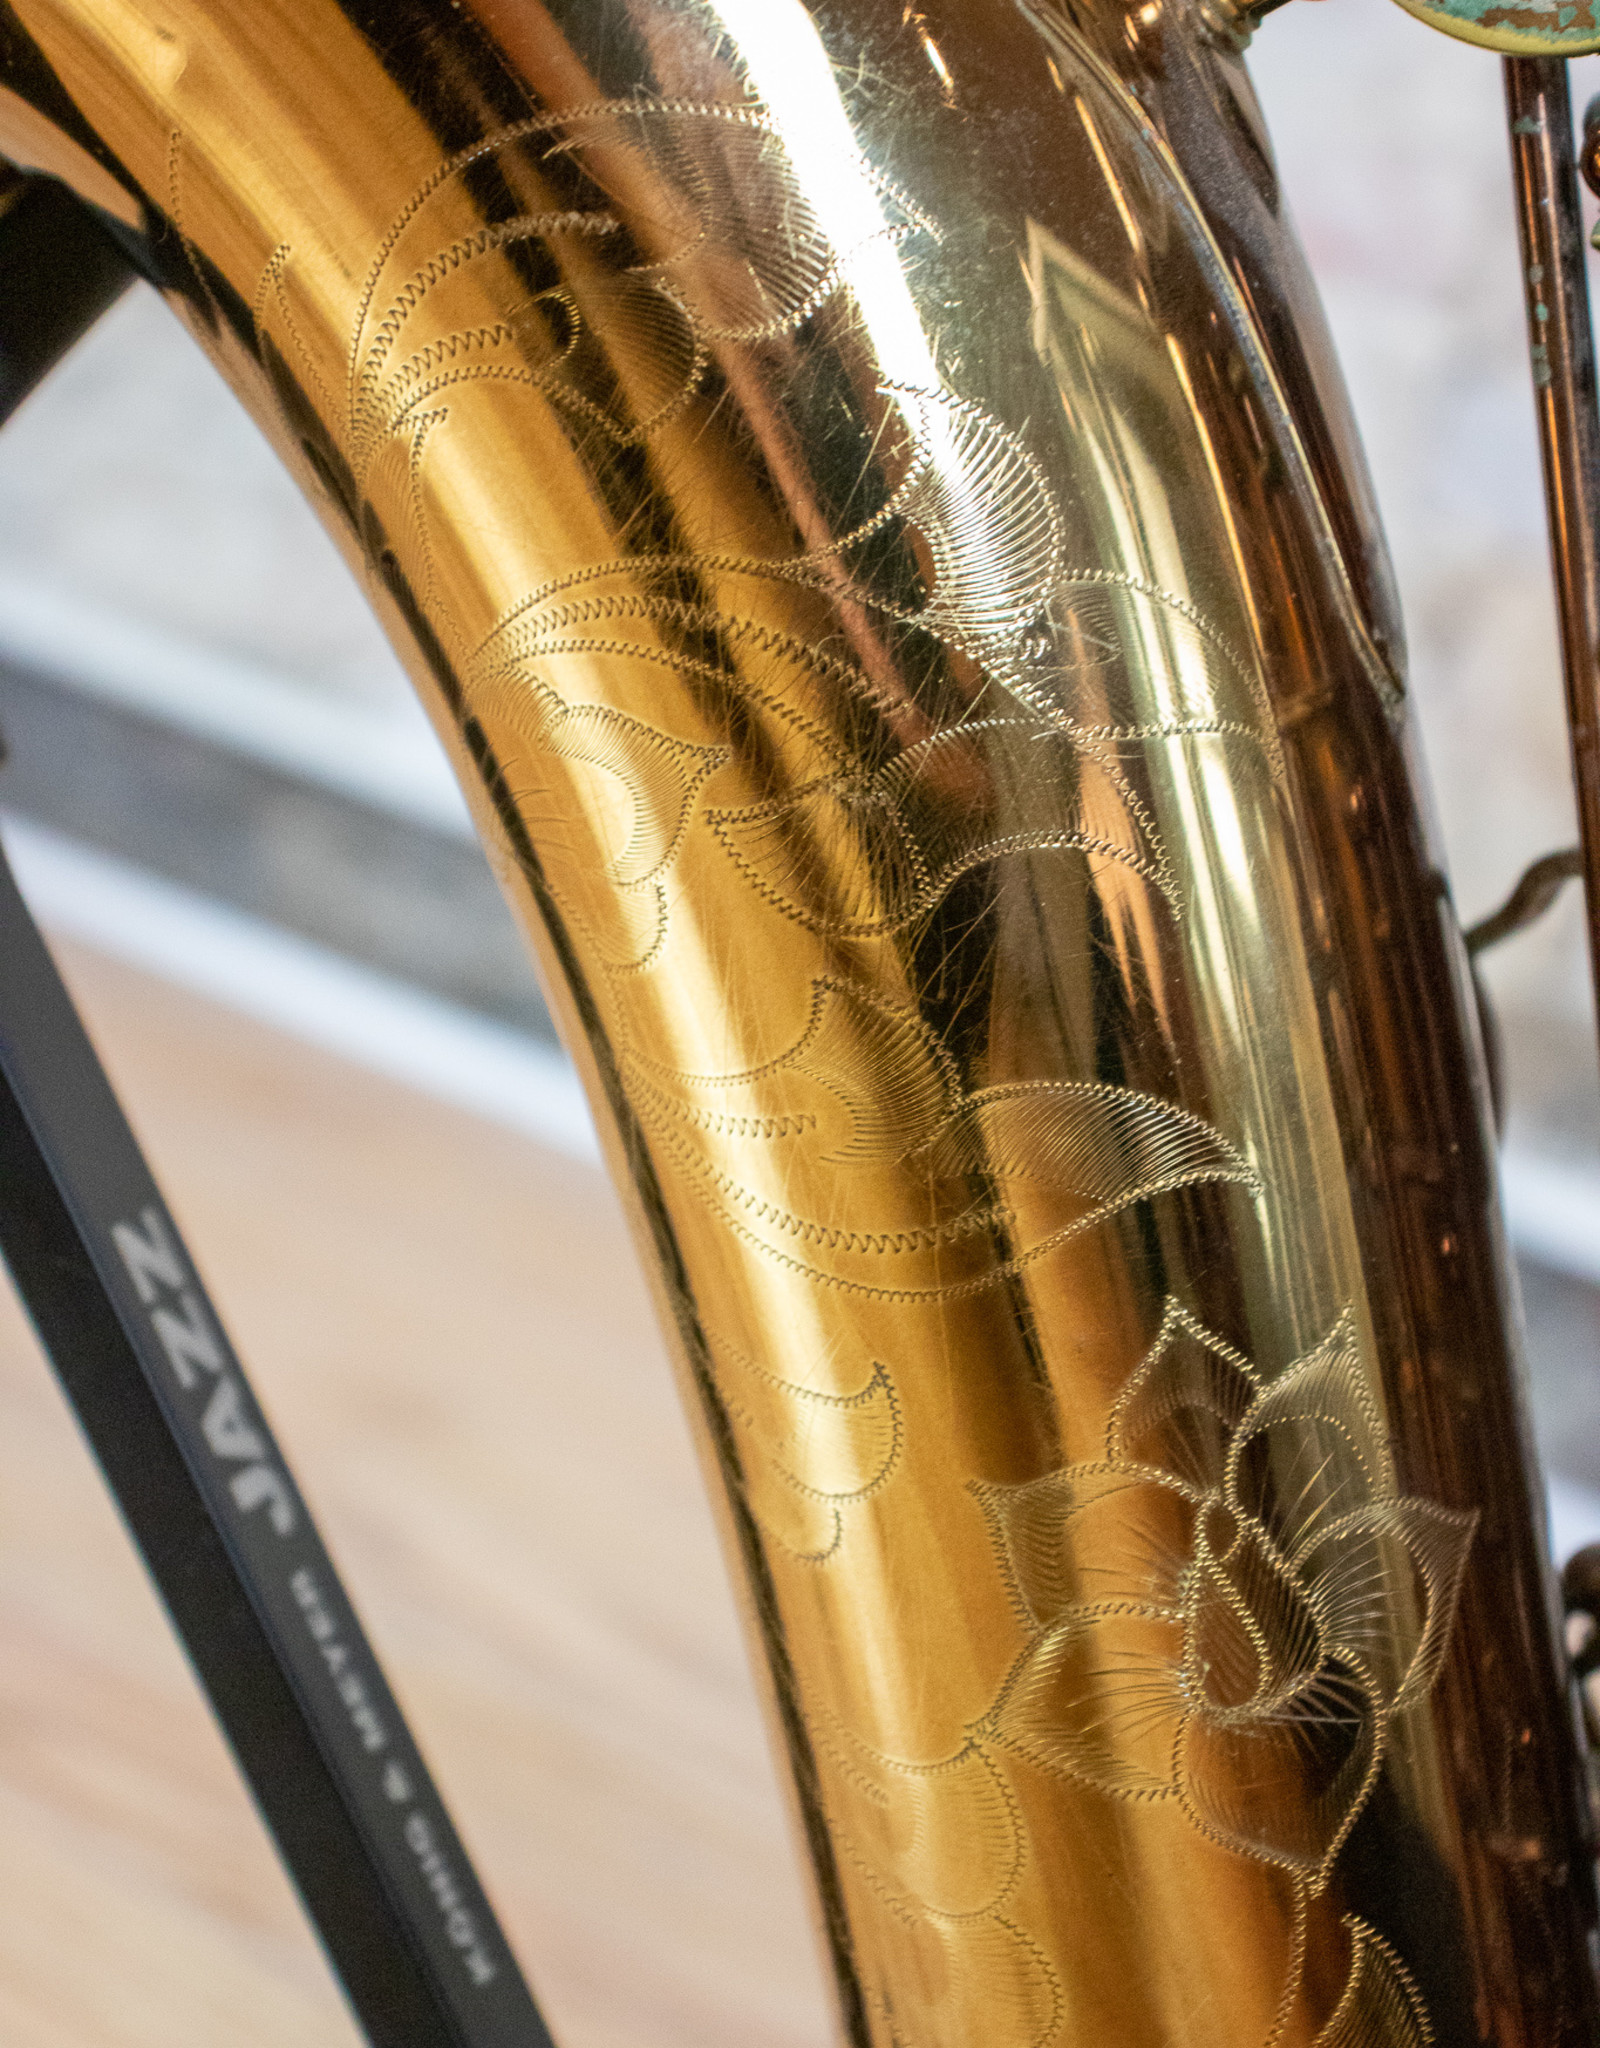 P. Mauriat As-Is P. Mauriat PMXT-66RCL Tenor Saxophone